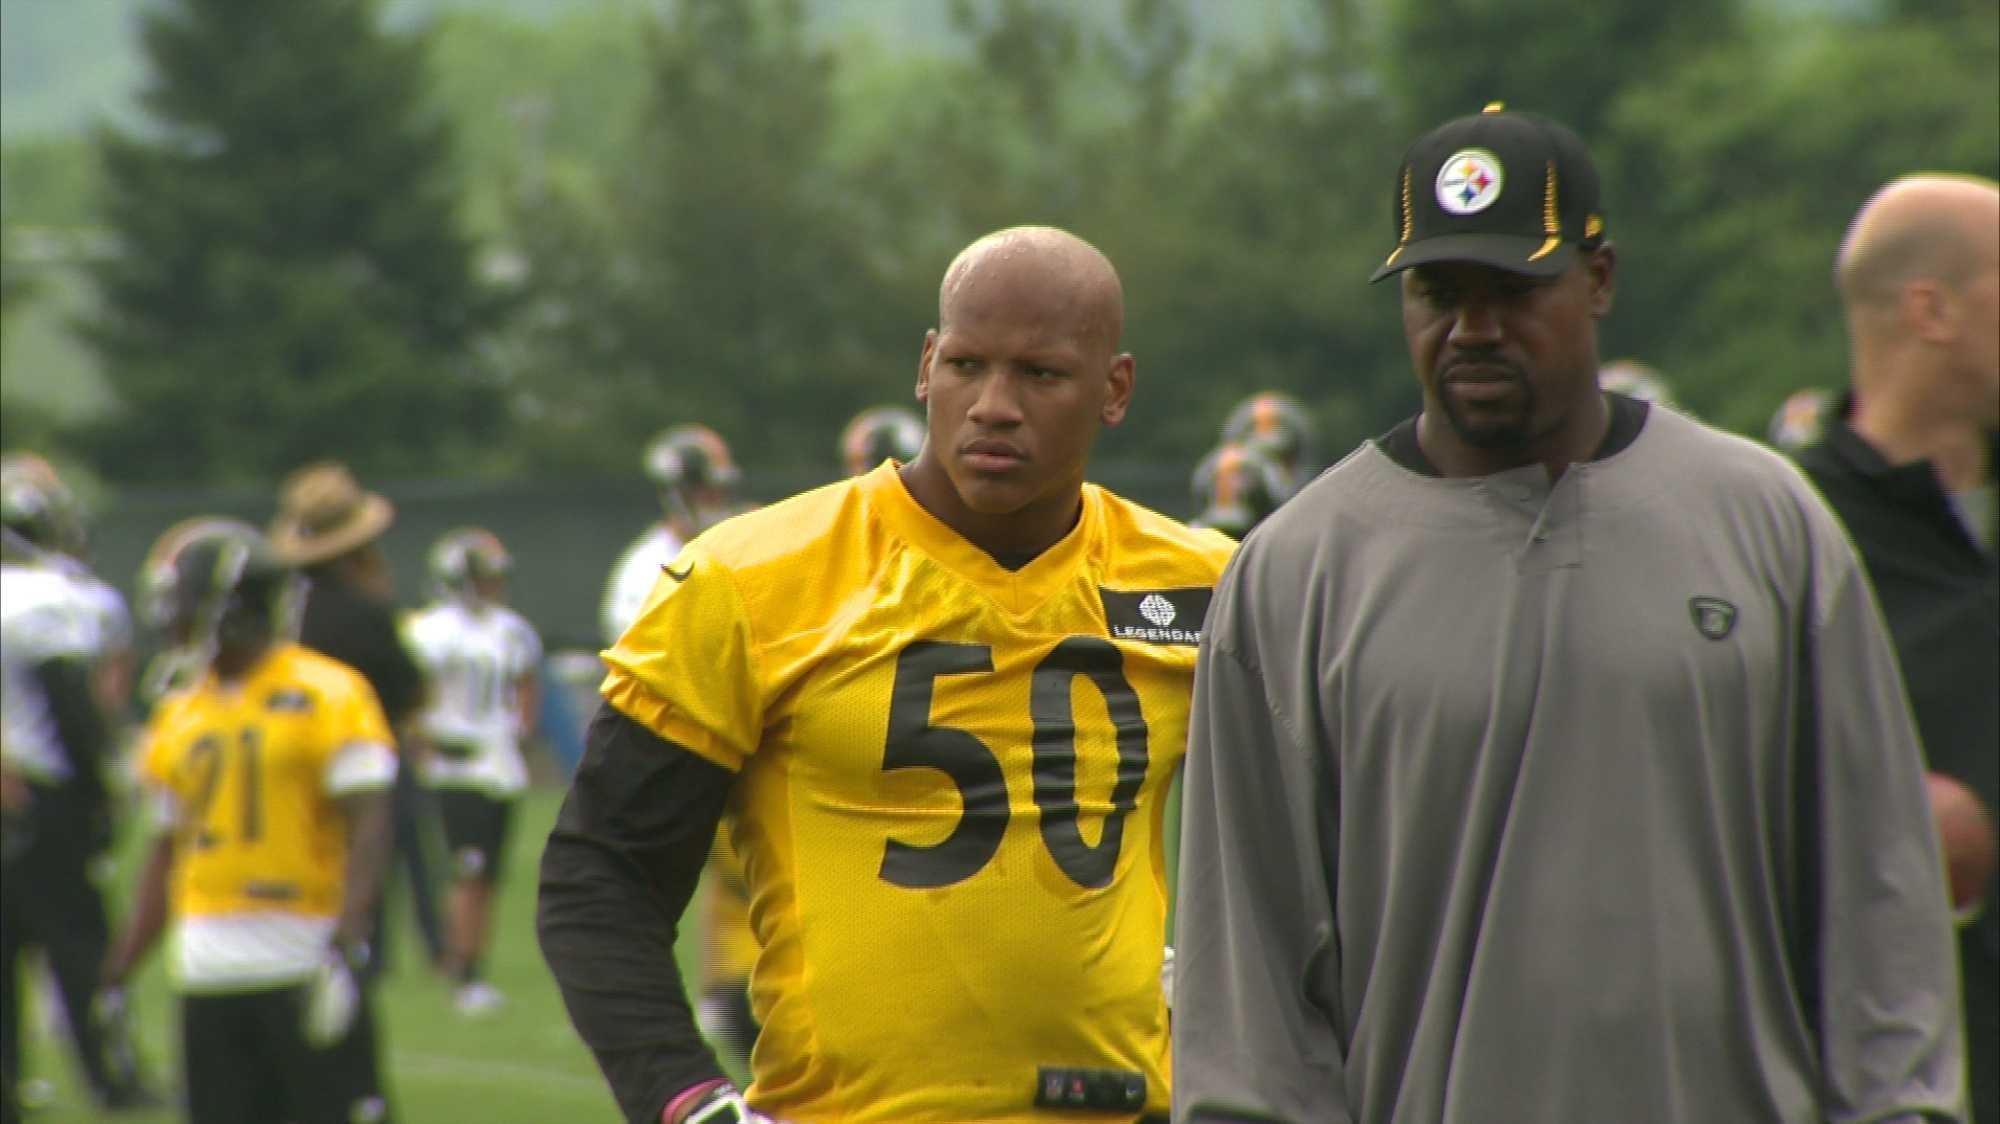 Ryan Shazier and Joey Porter